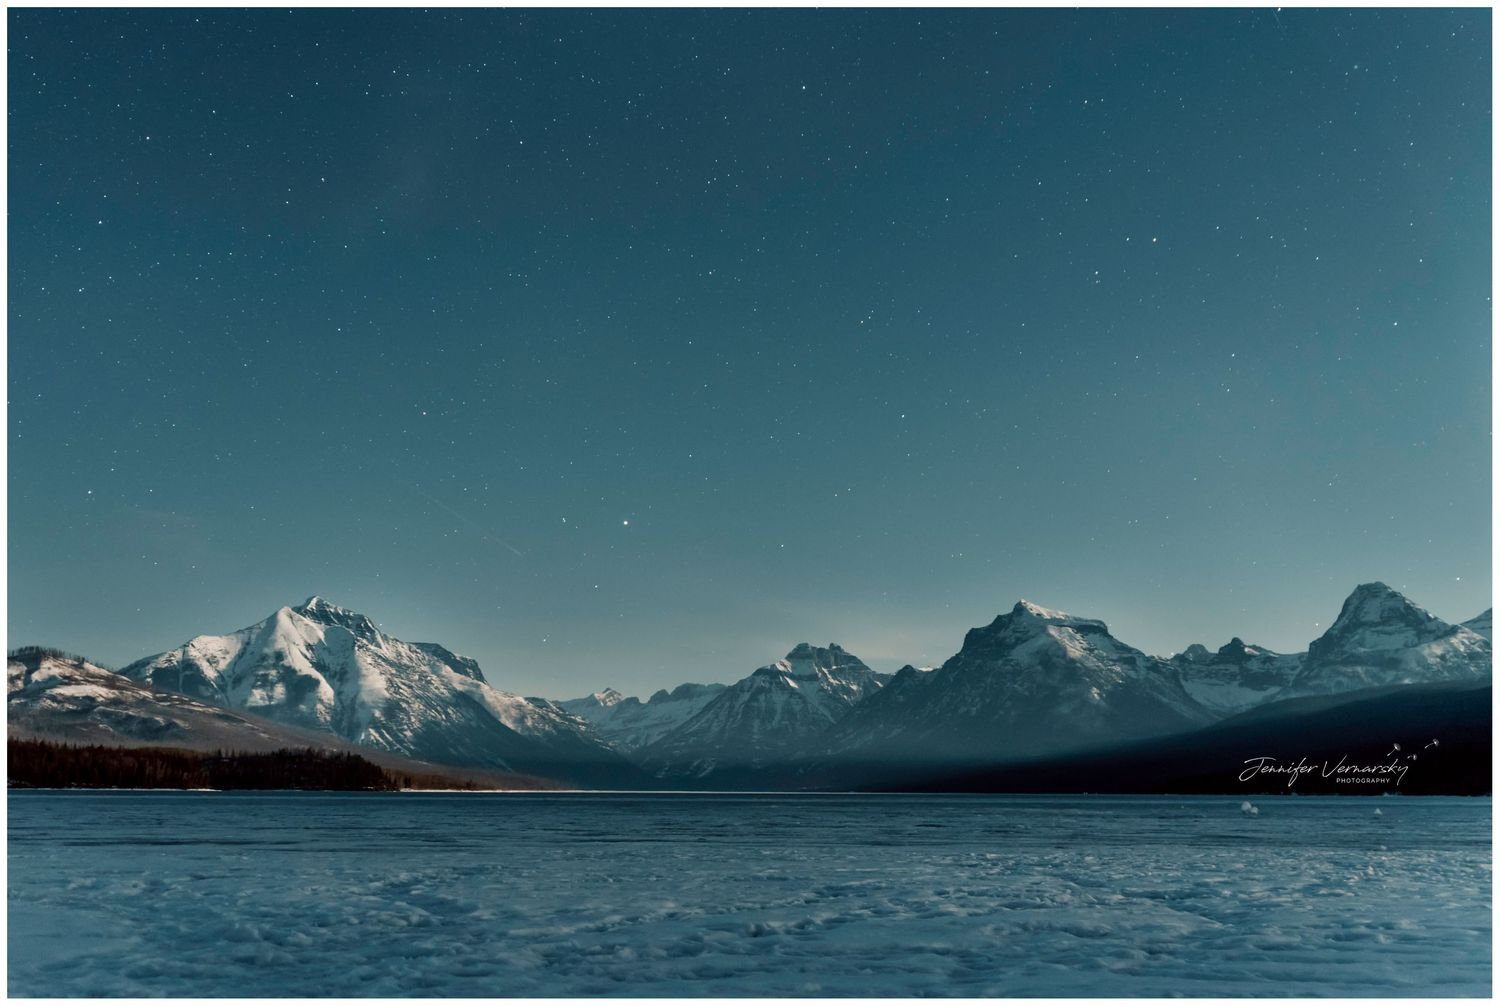 Frozen Lake McDonald at Glacier National Park, night sky with moon rising on the far right out of the image